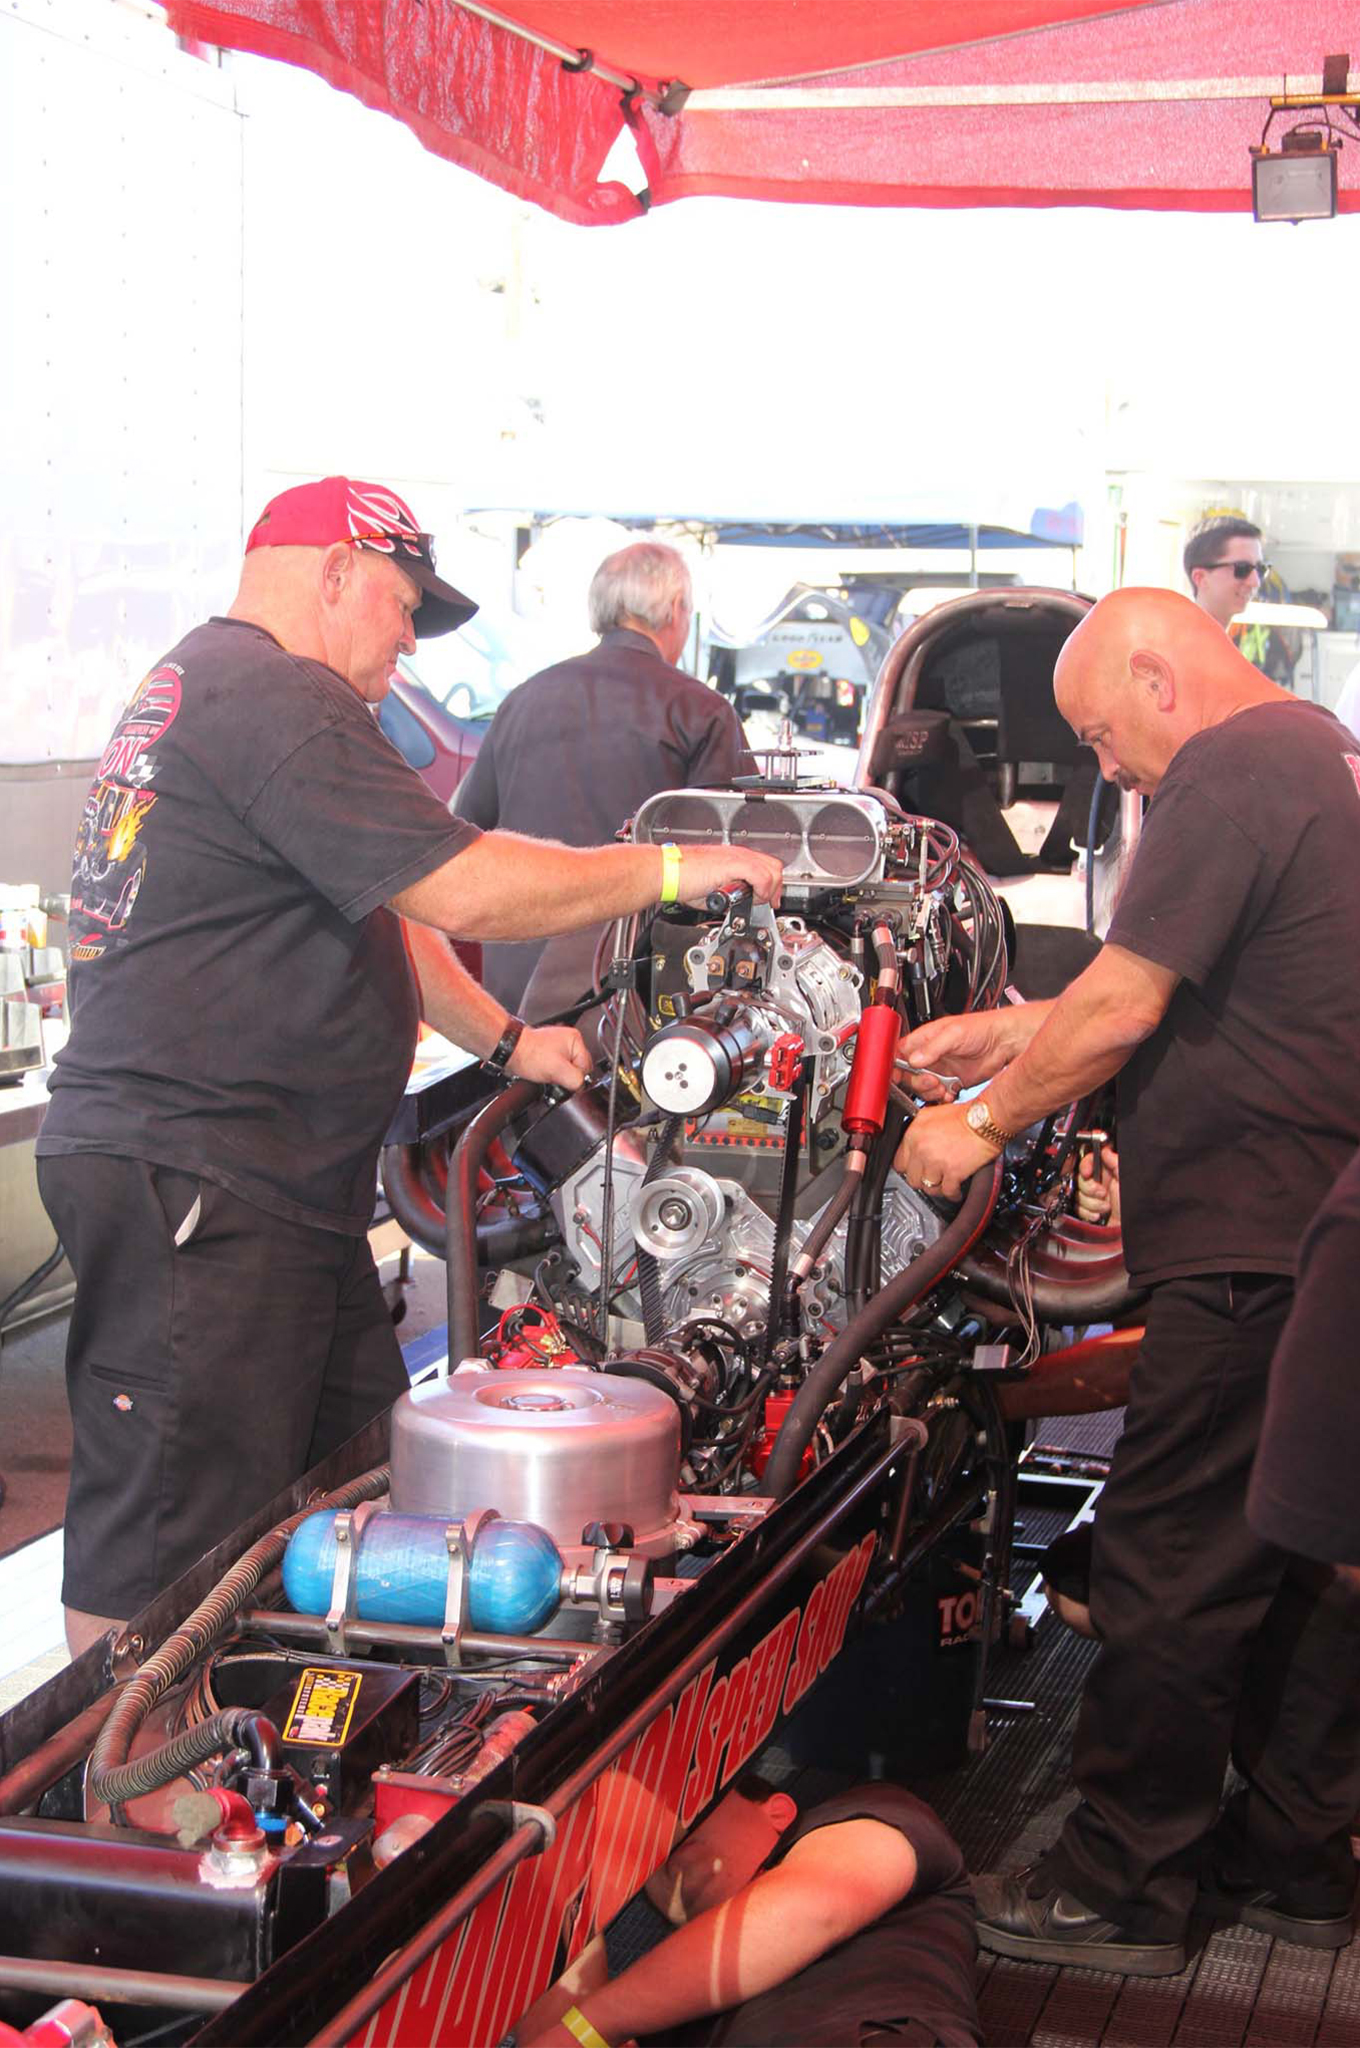 Tom Mclennan on the left and Tony Bernardini wrenching on the Special at Bakersfield.